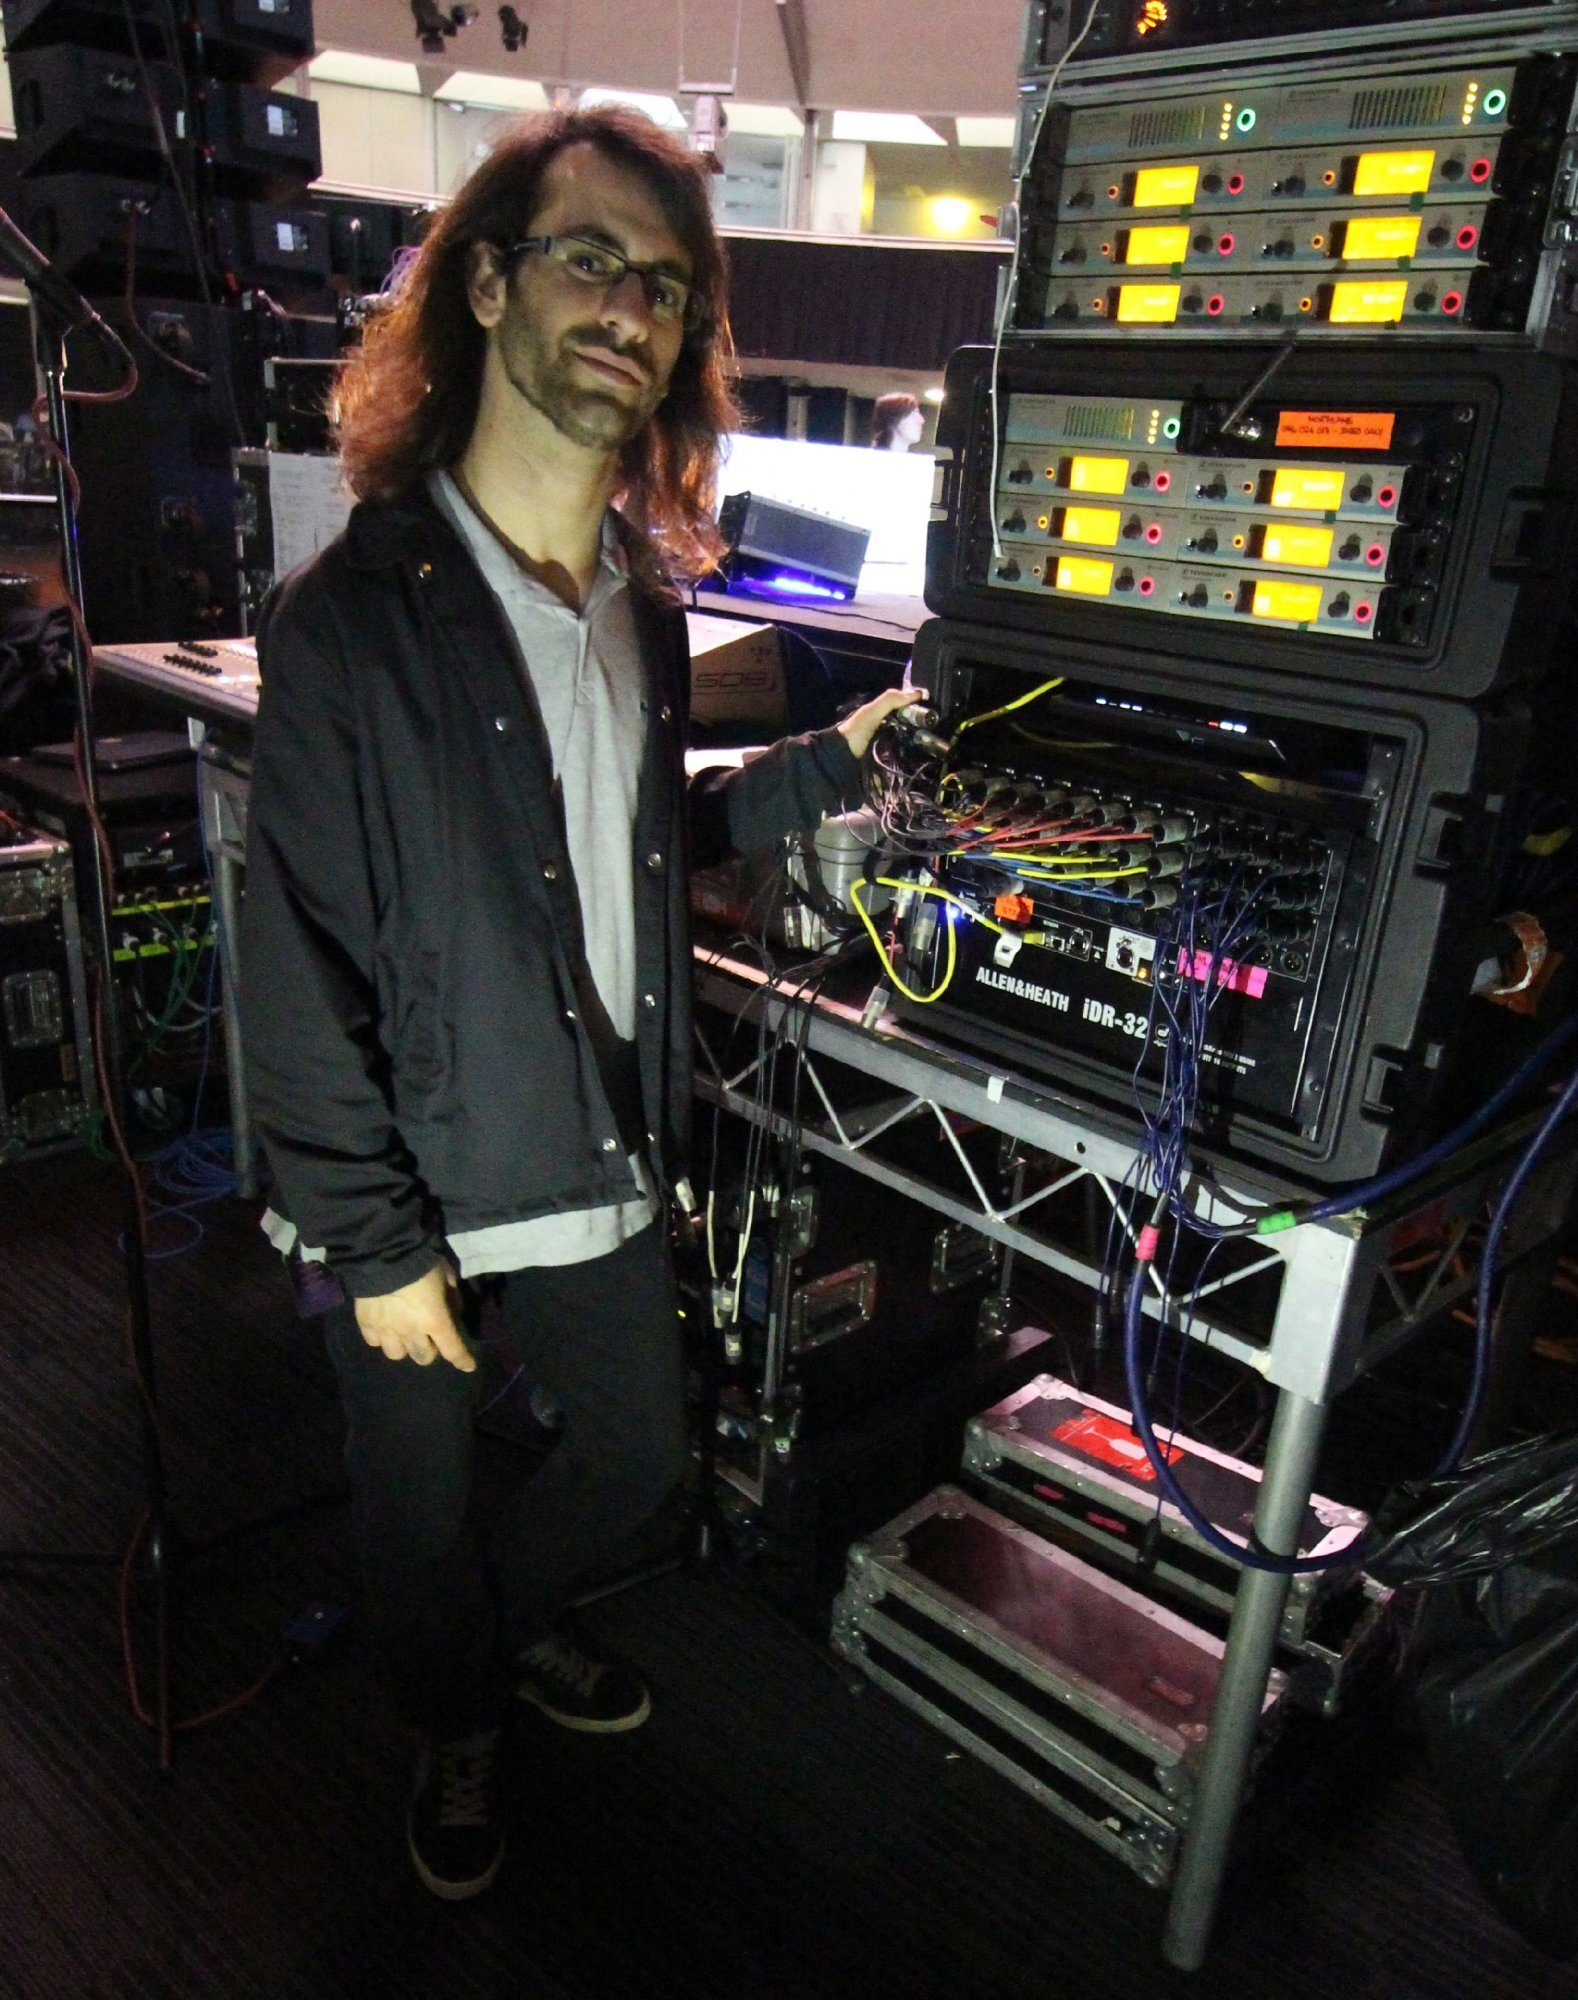 Australian Metal Band Tours with iLive Rack Monitor System